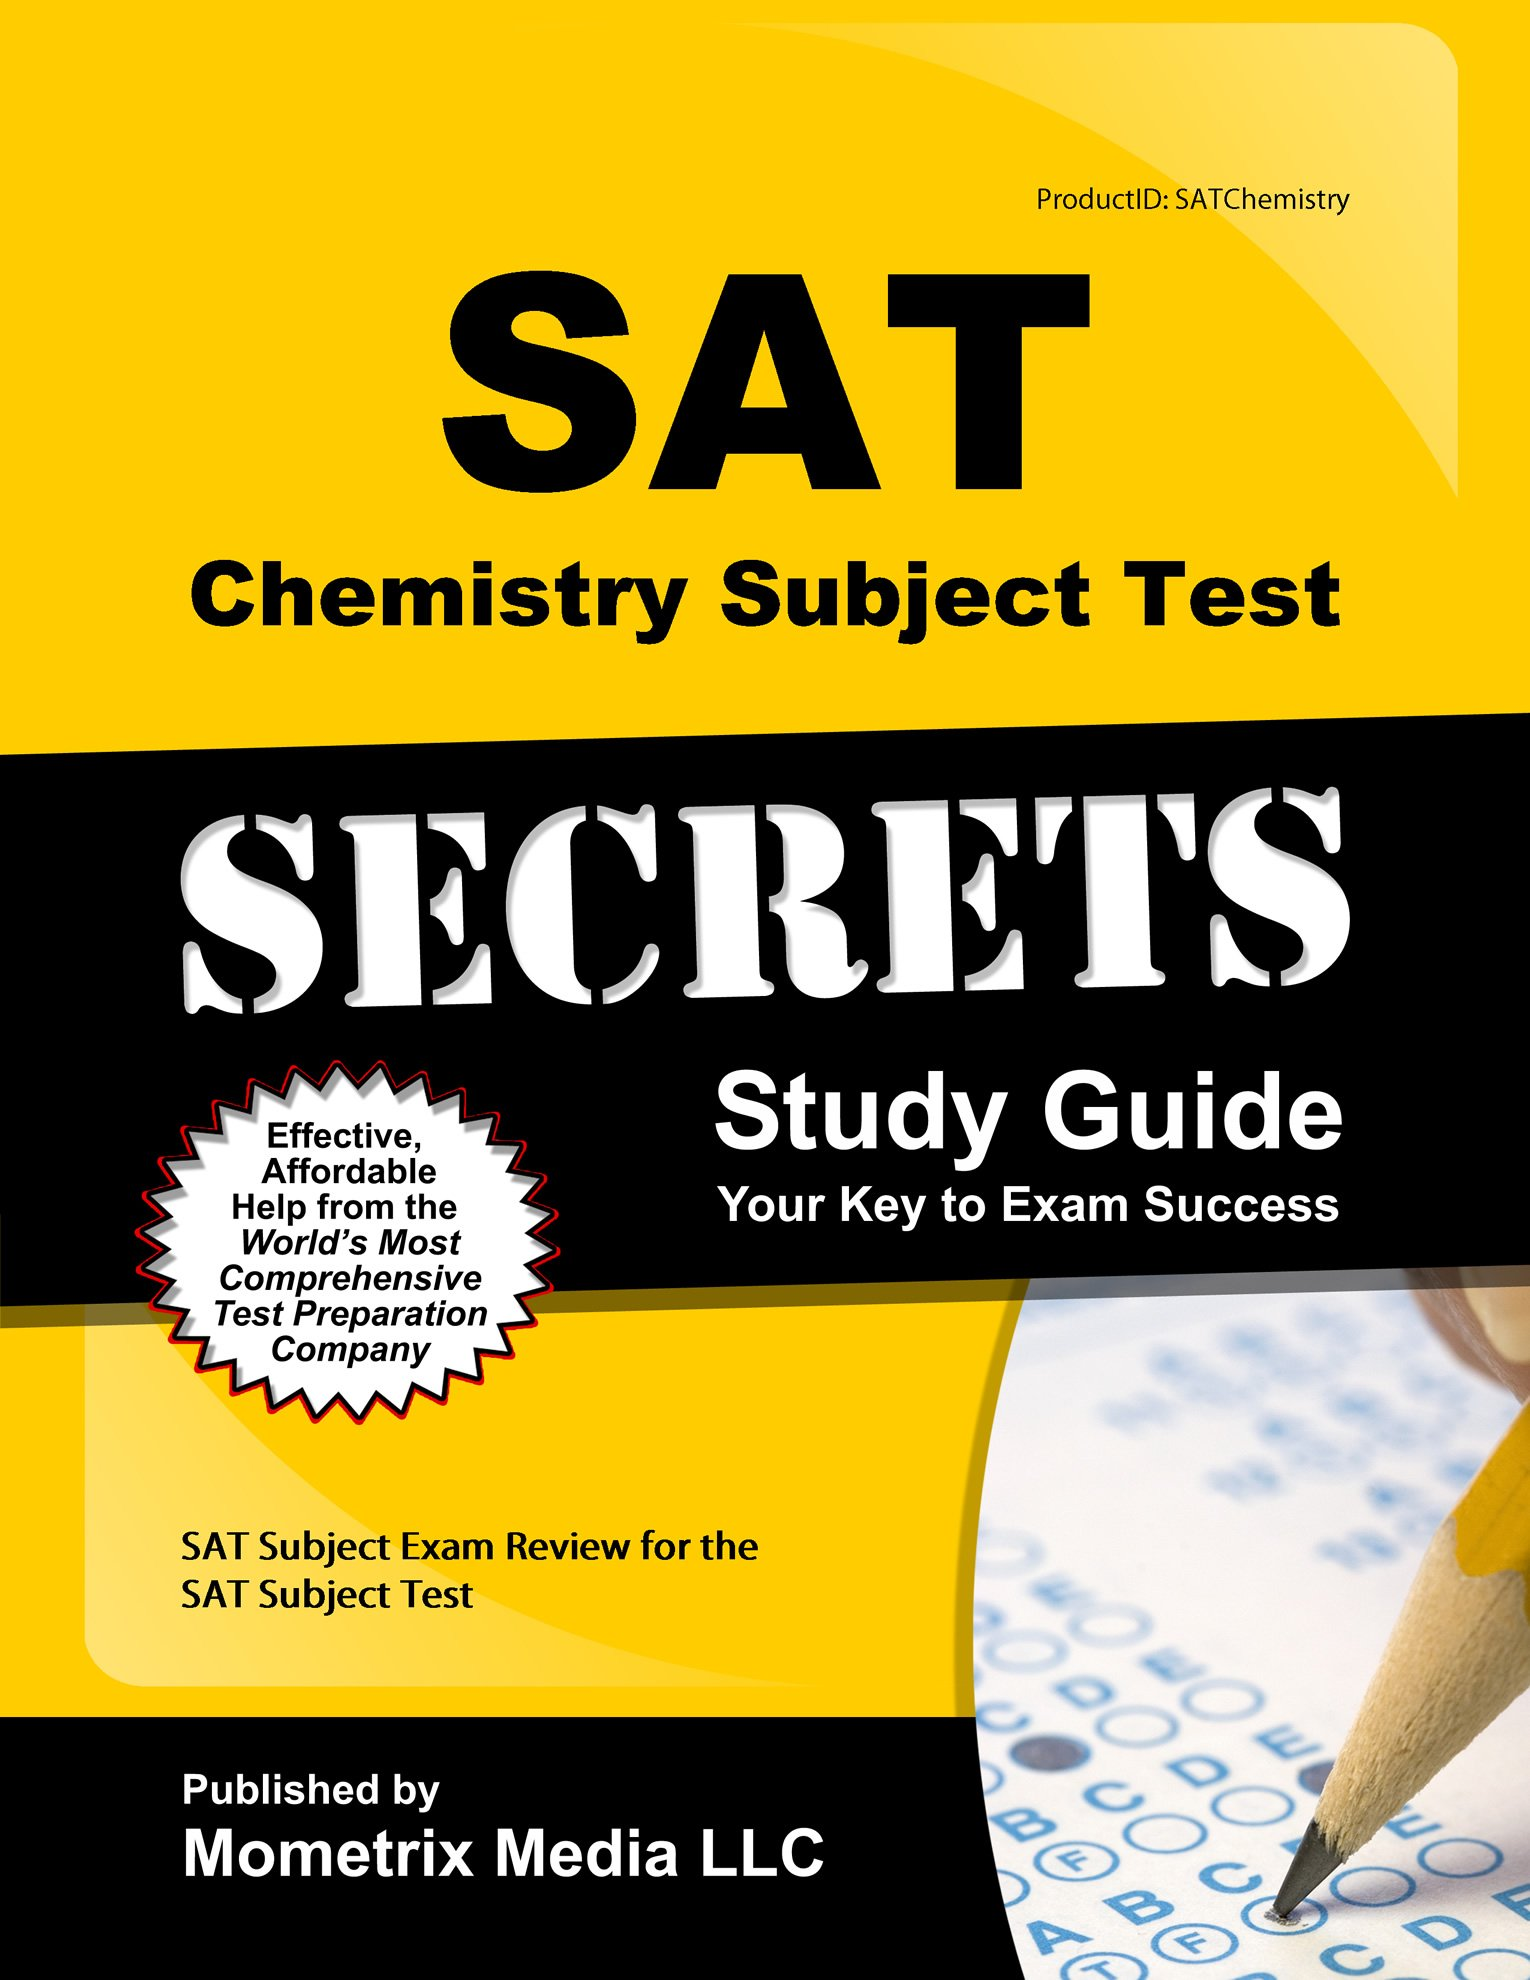 sat chemistry subject test secrets study guide sat subject exam rh amazon com sat subject chemistry practice test from official study guide pdf sat subject chemistry practice test from official study guide pdf download